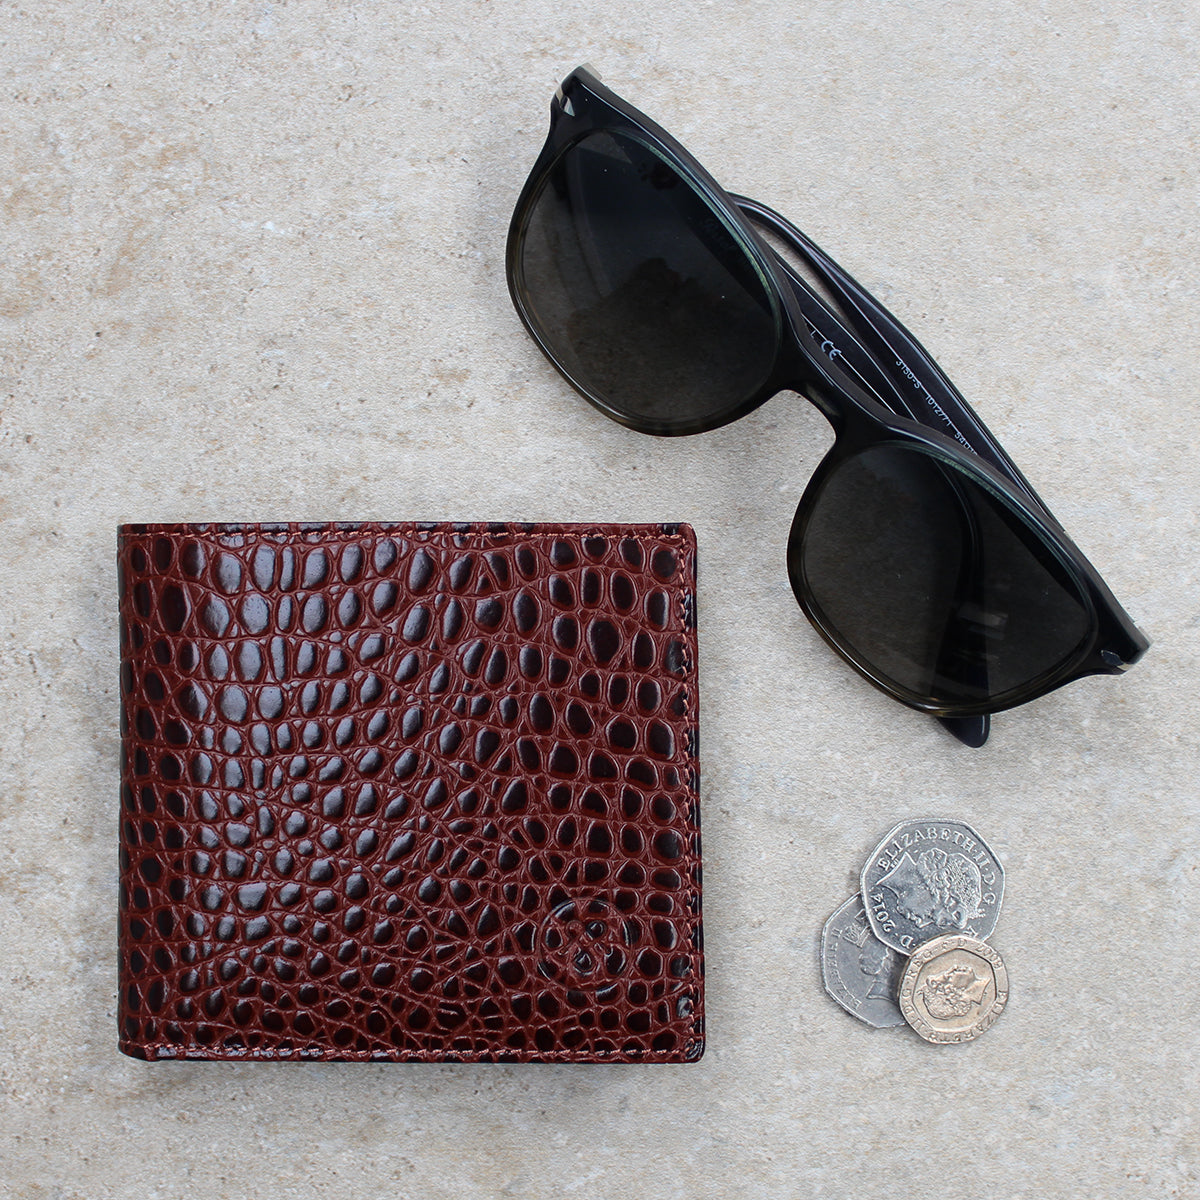 Image 8 of the 'Ticciano' Mock Croc Chocolate Veg-Tanned Leather Wallet with Coin Pocket